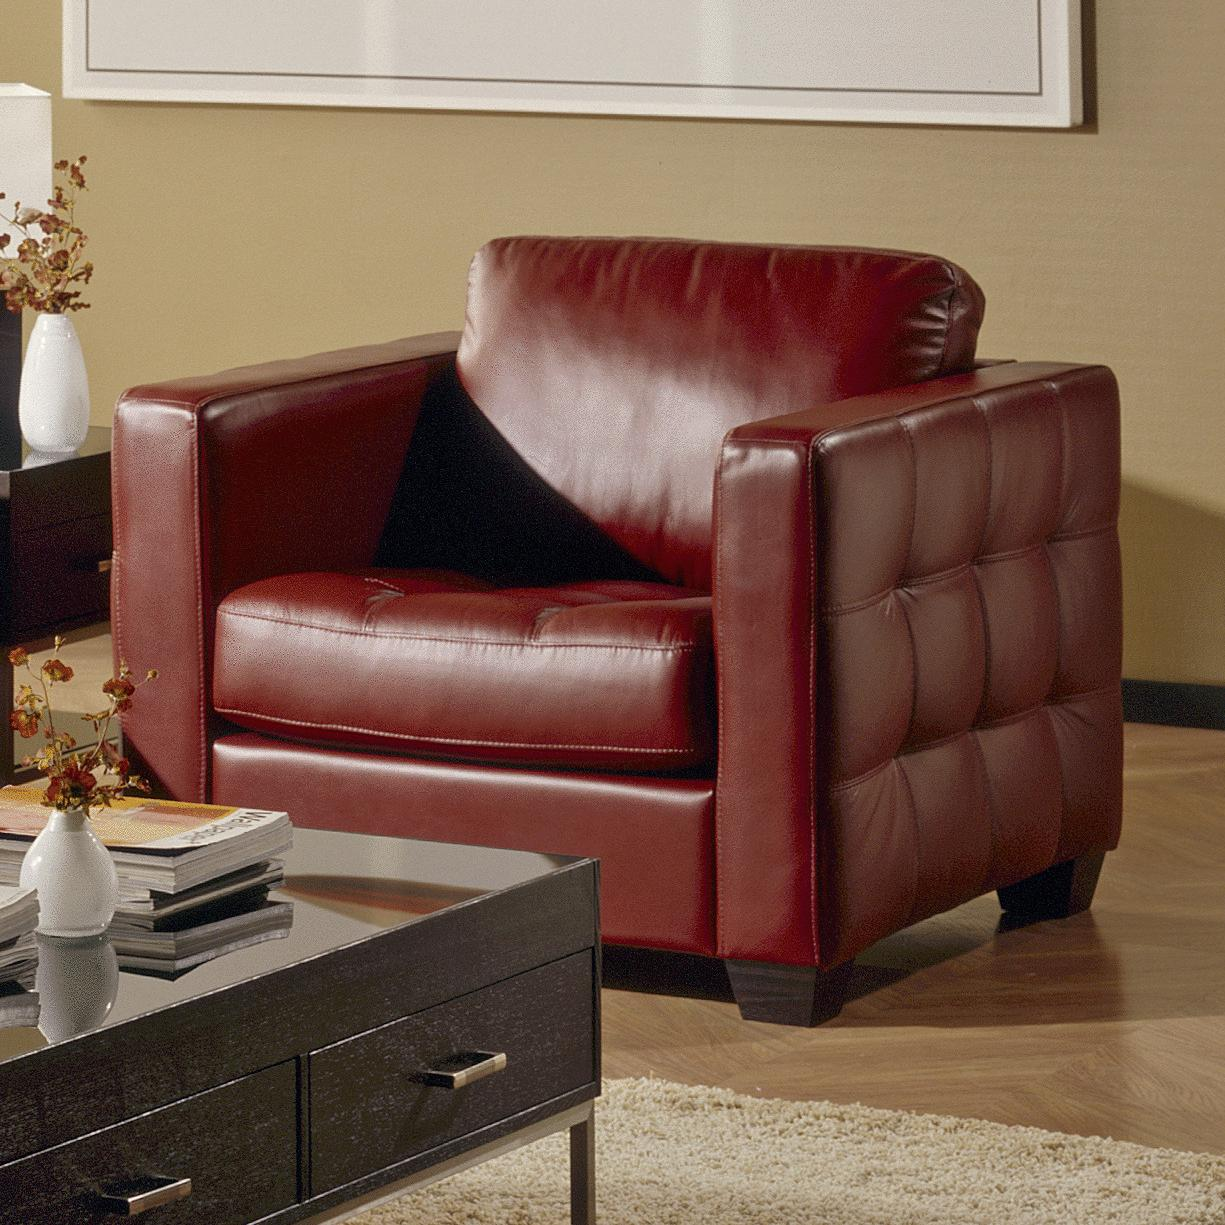 palliser barrett contemporary upholstered chair with square